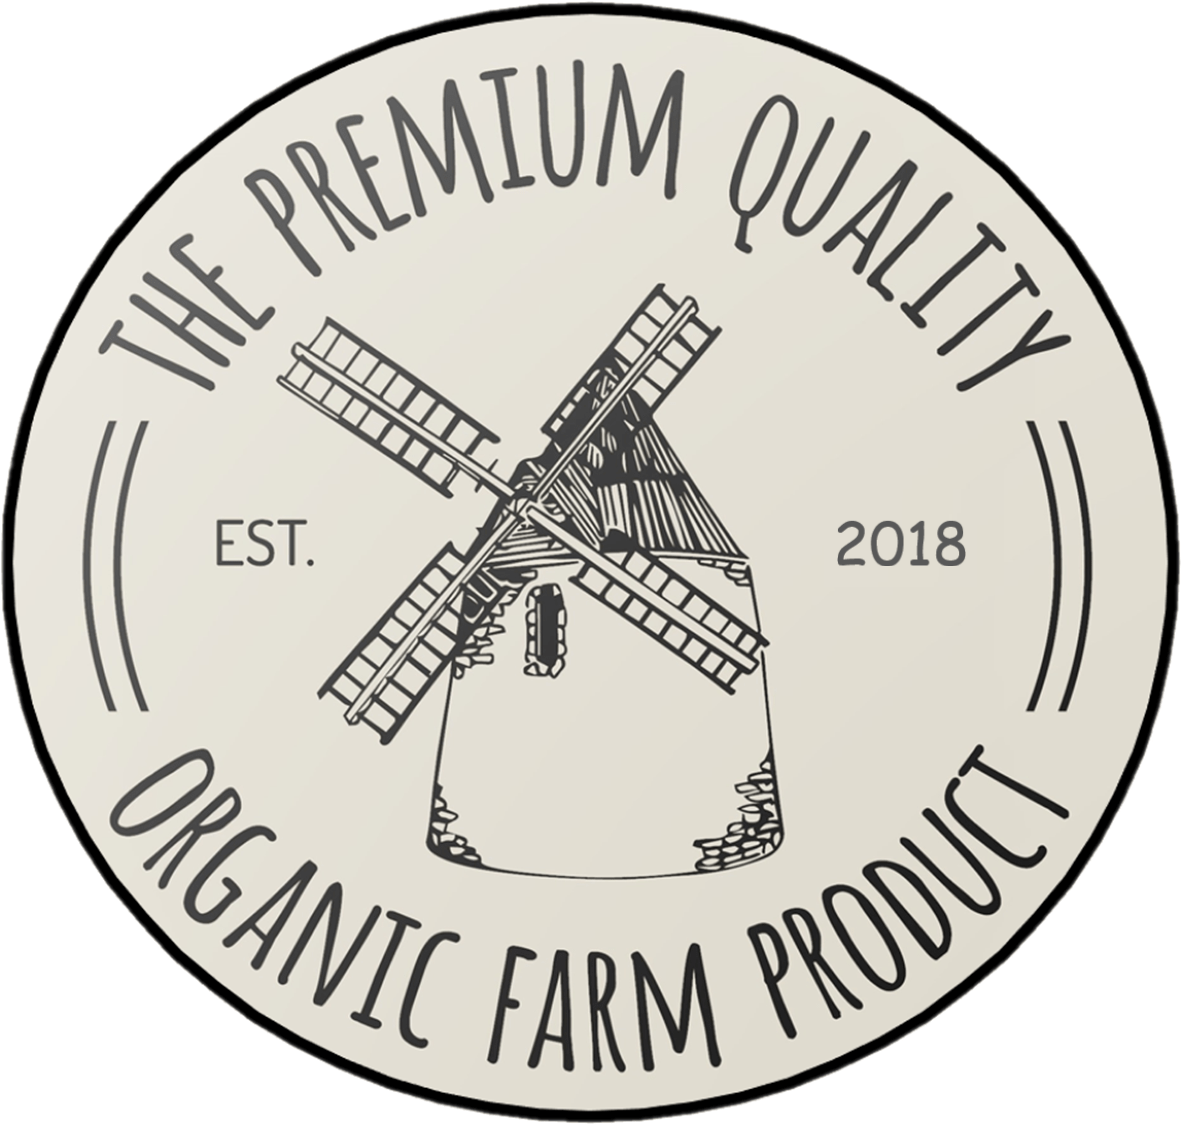 Greater Greens - High Quality Organic Produce Year Round